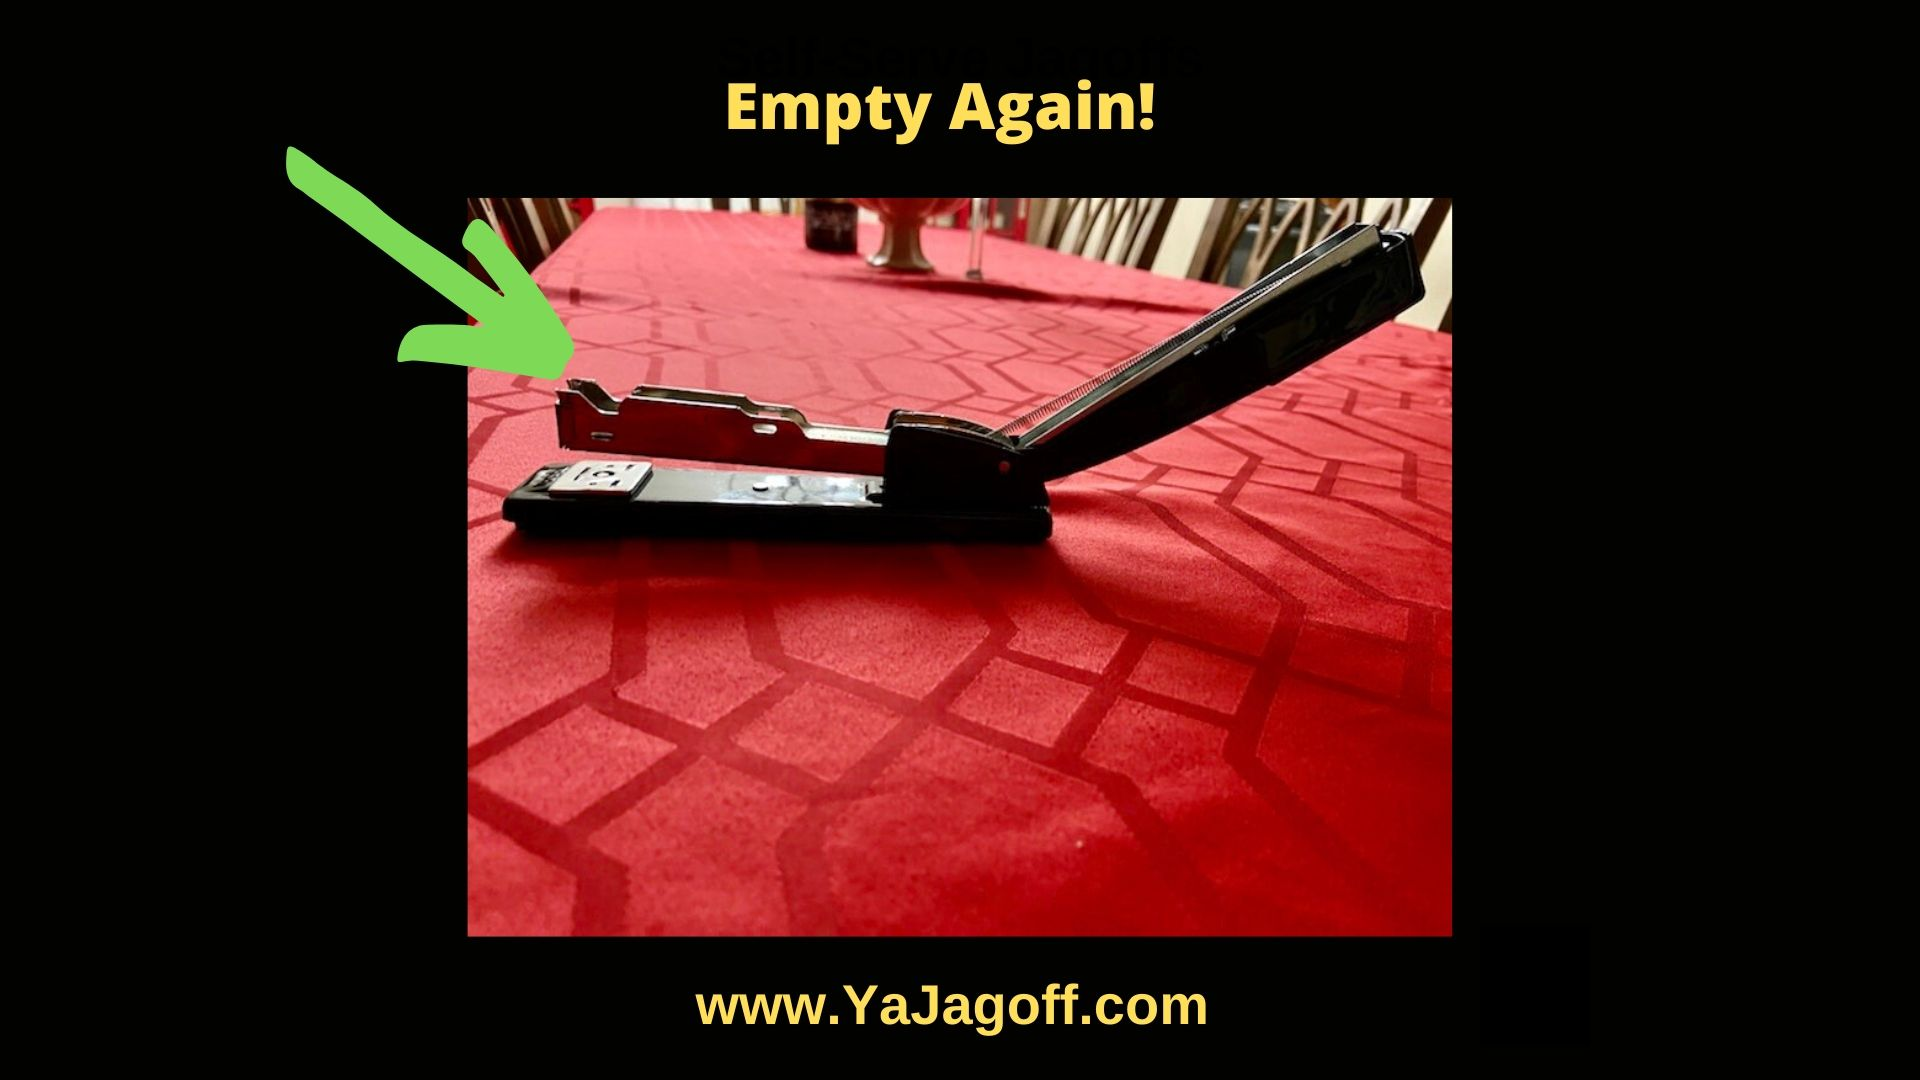 YaJagoff Podcast Stapler Jagoffs at Work